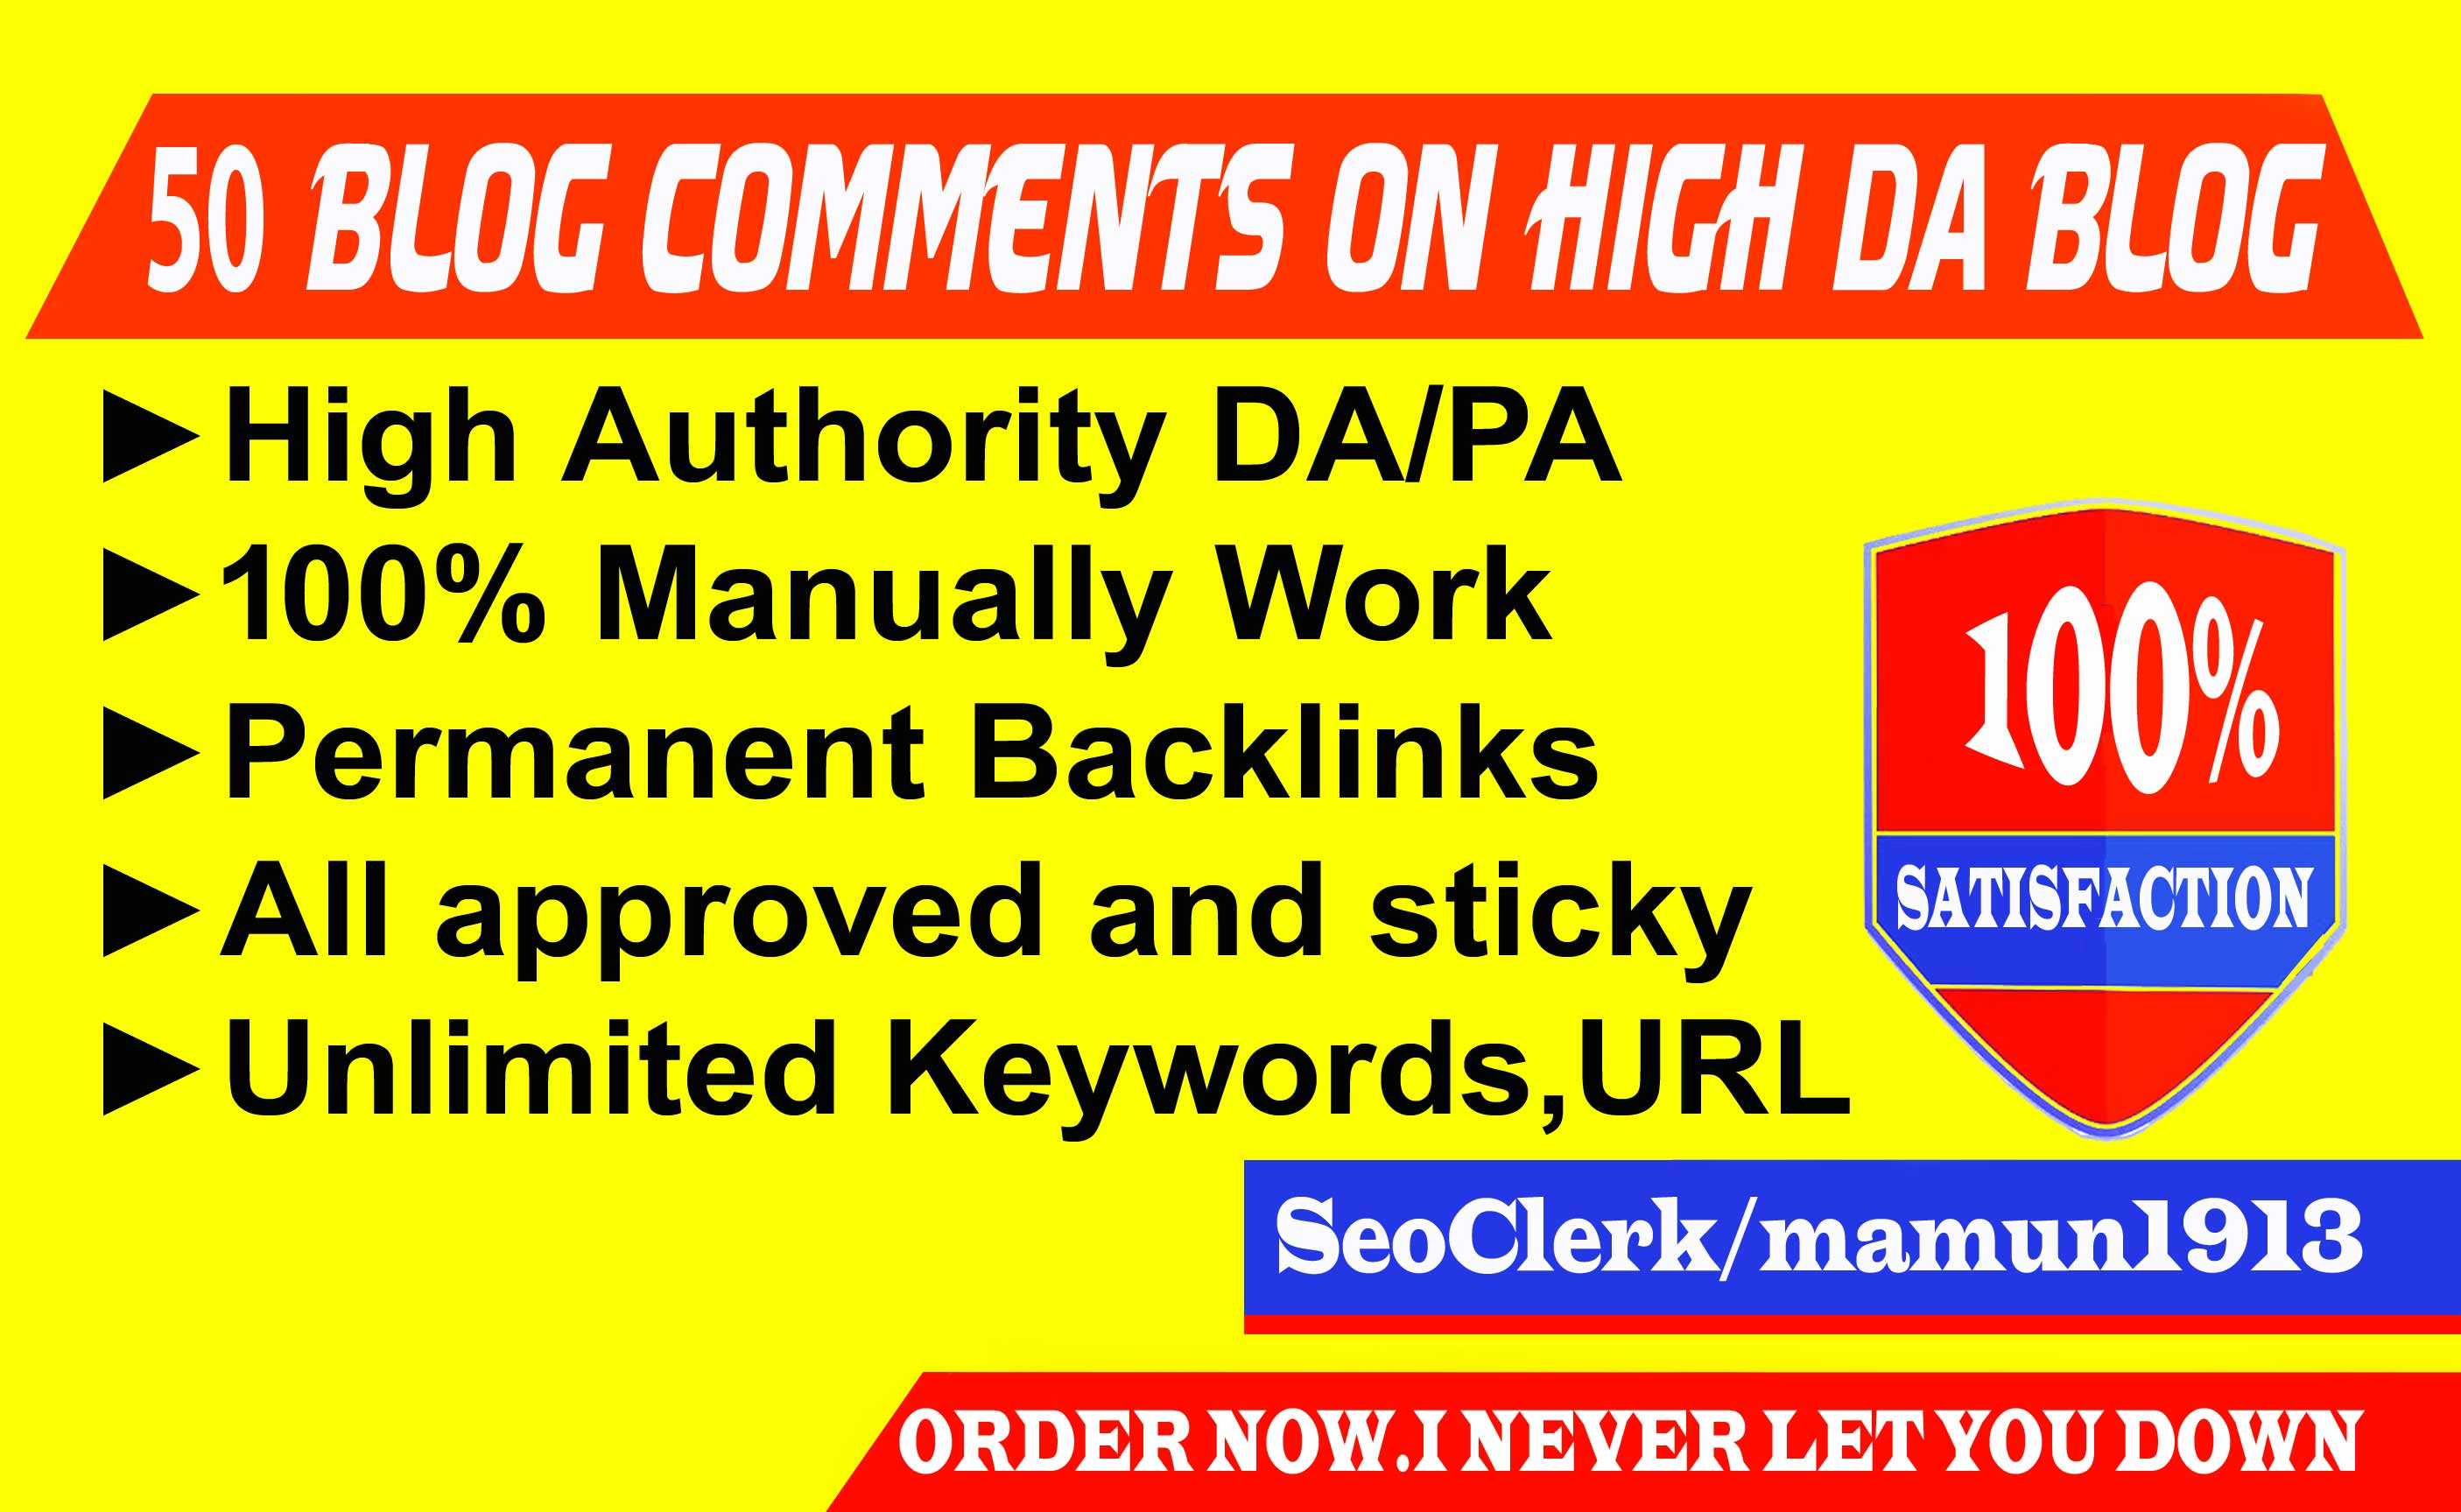 Create 70 Blog Comments on High DA Blog